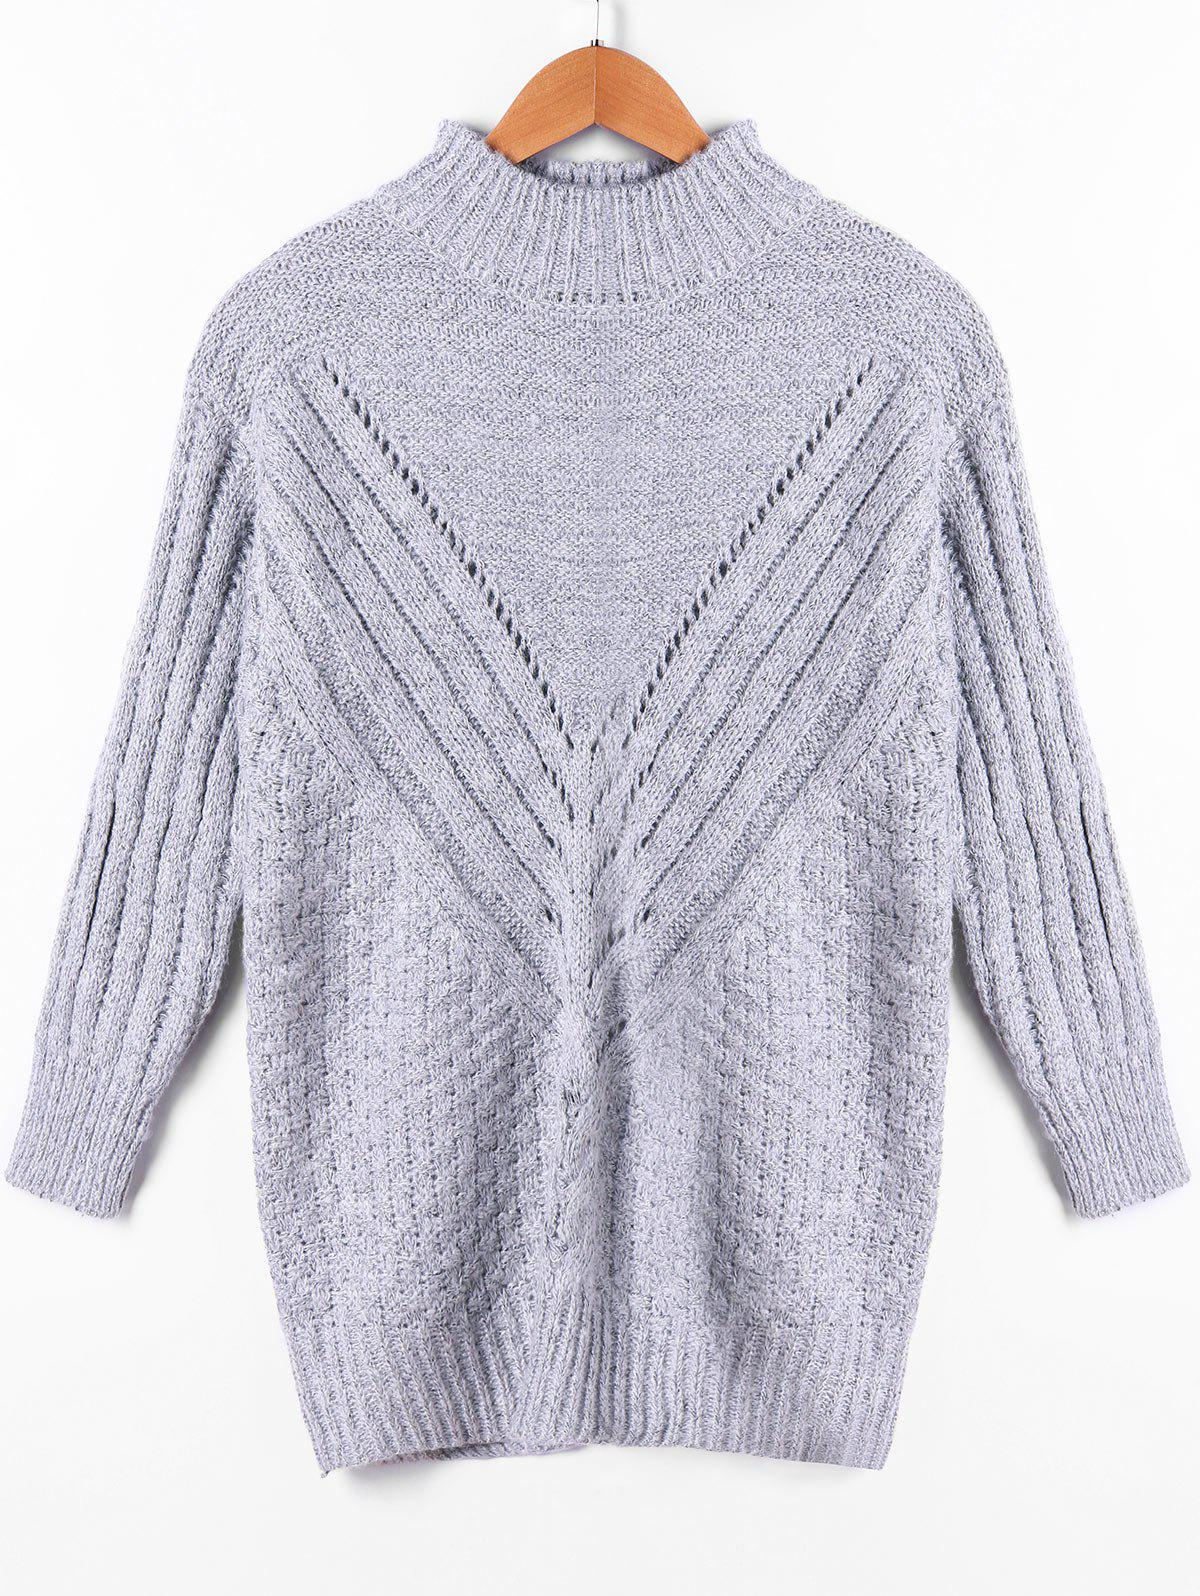 New Ribbed High Neck Sweater